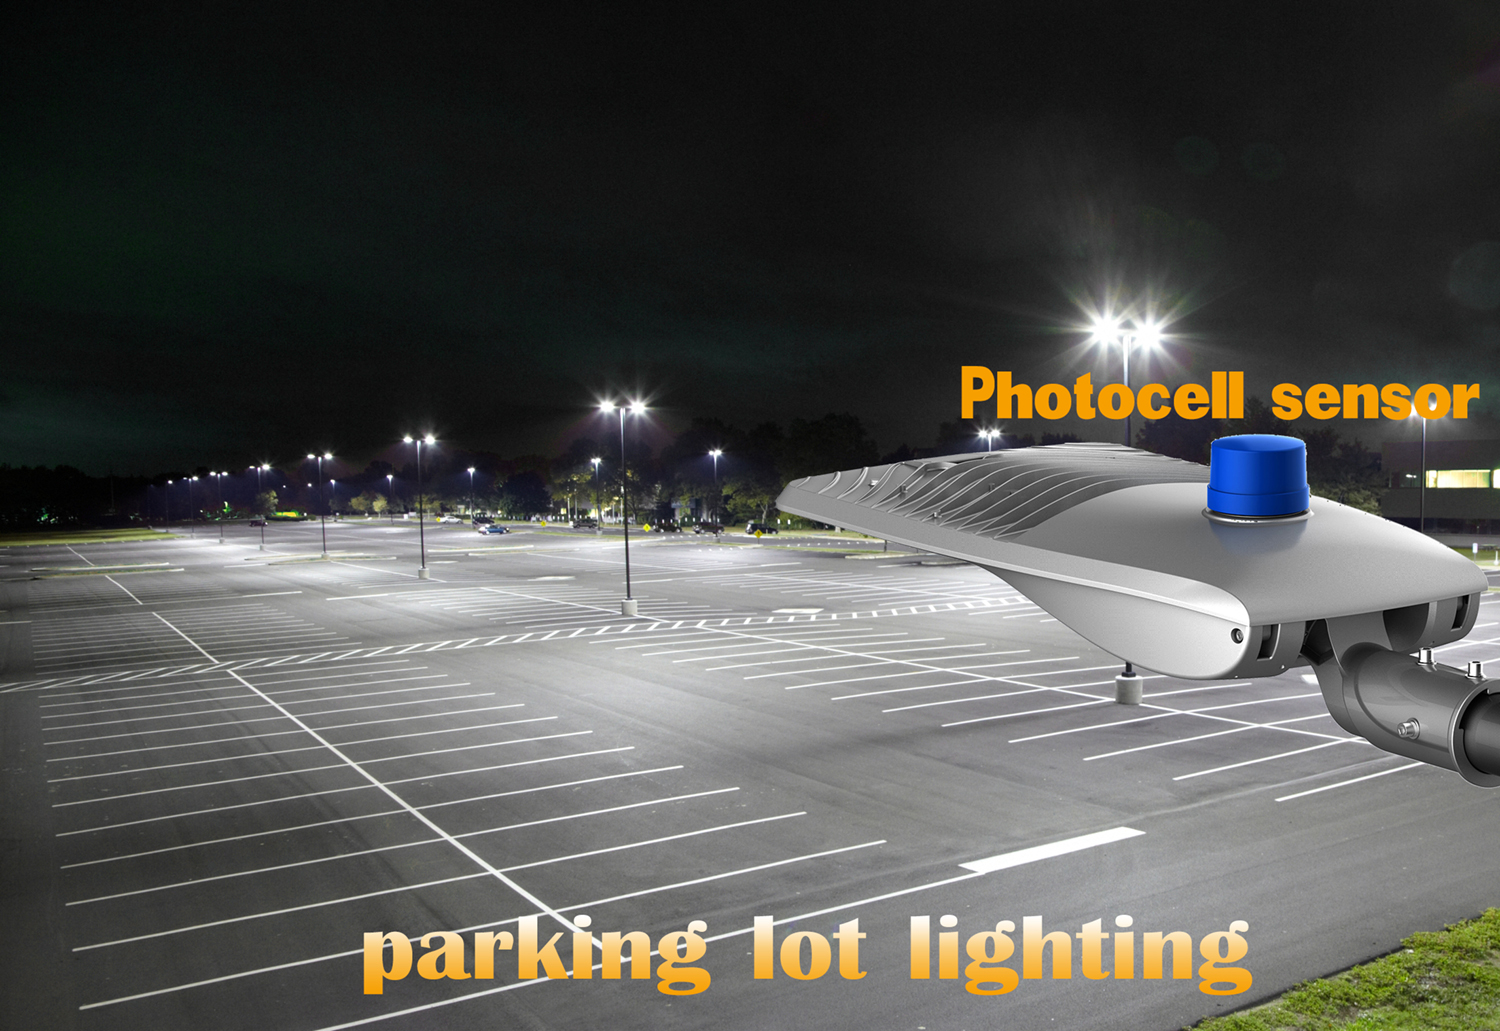 Parking Lot Light With Photocell Sensor